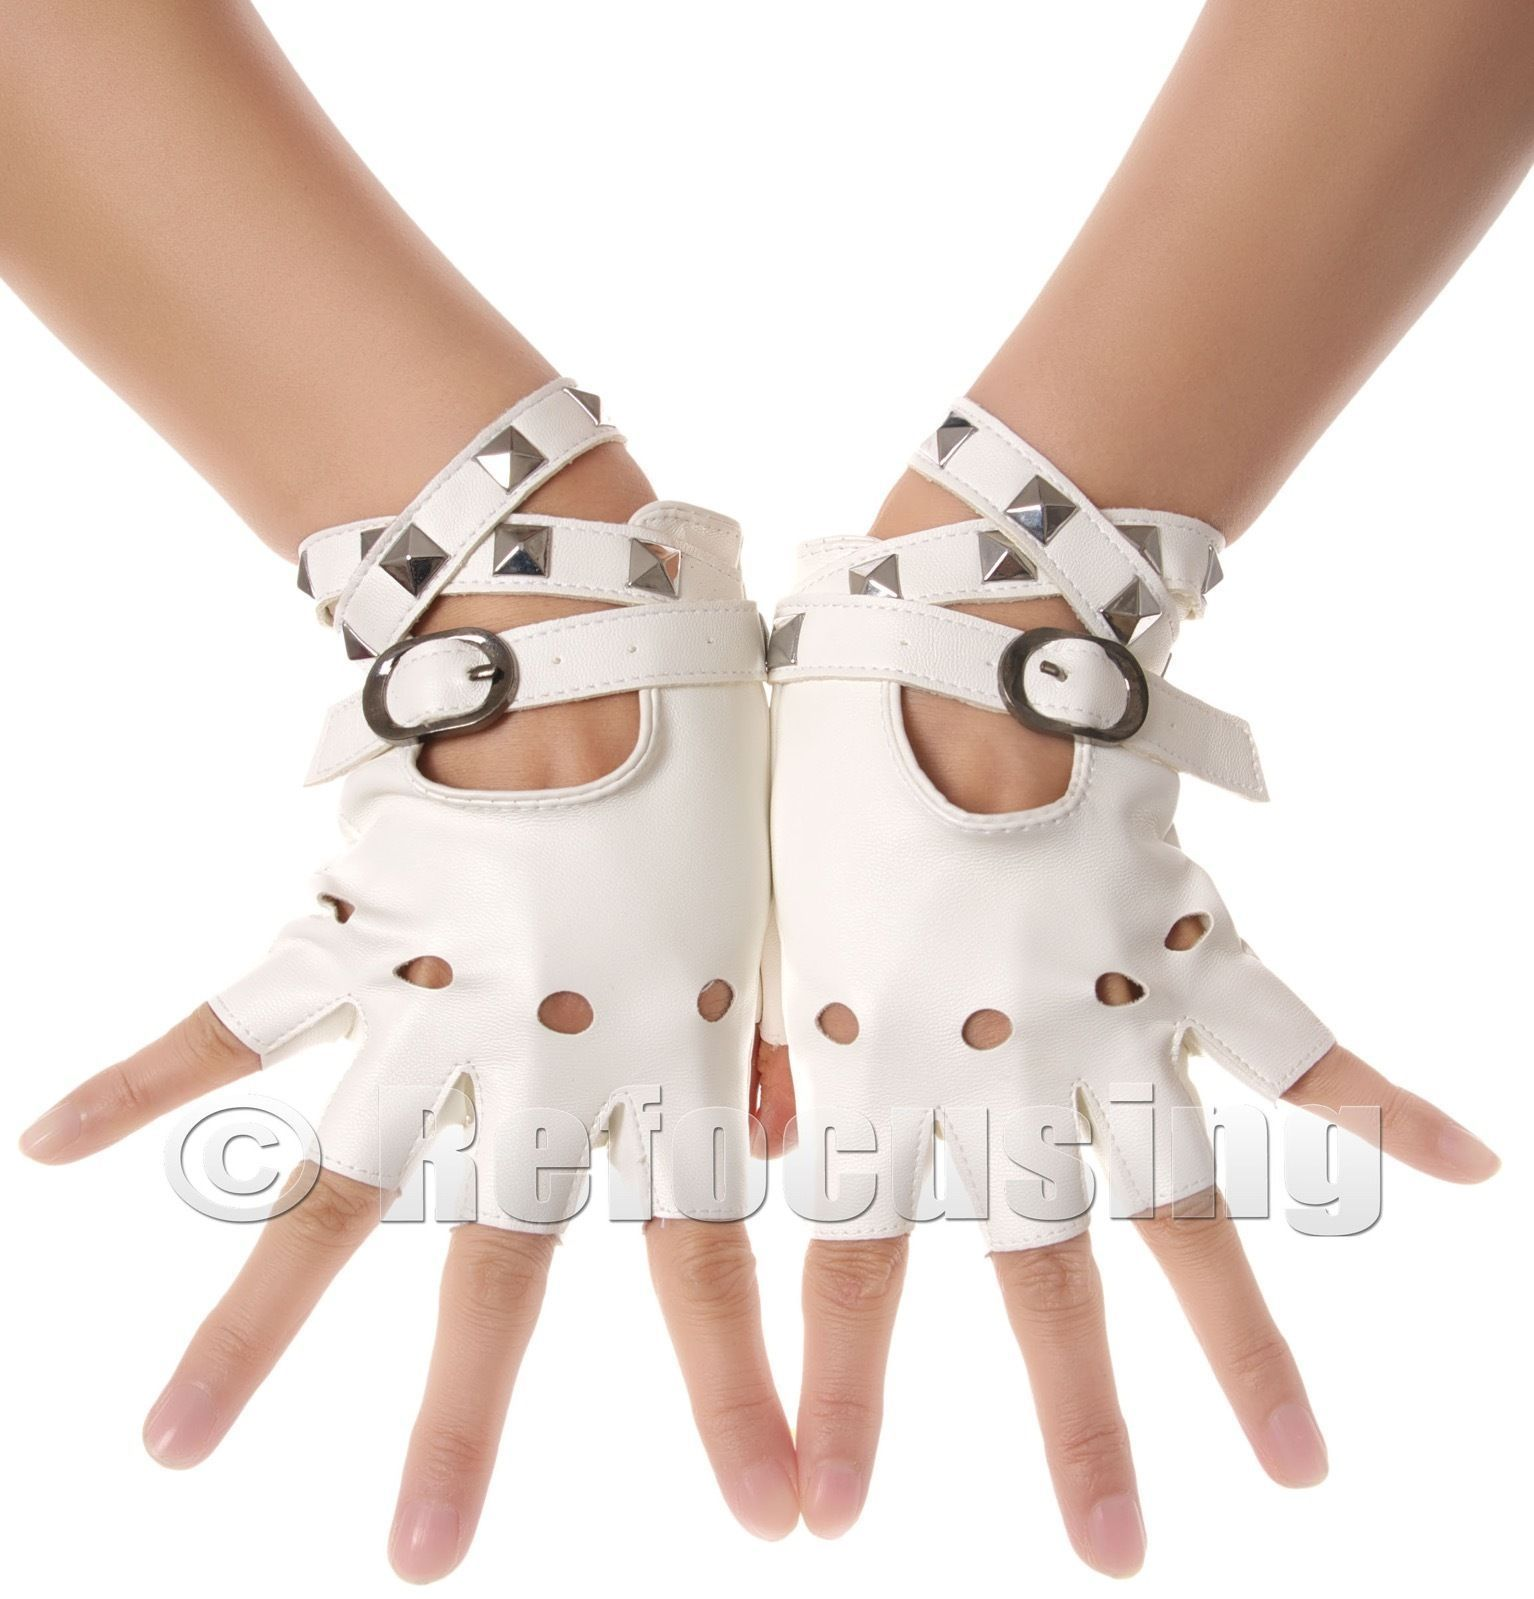 017610bf4 White stud faux leather fingerless gloves   Gloves   Gloves, Gloves ...